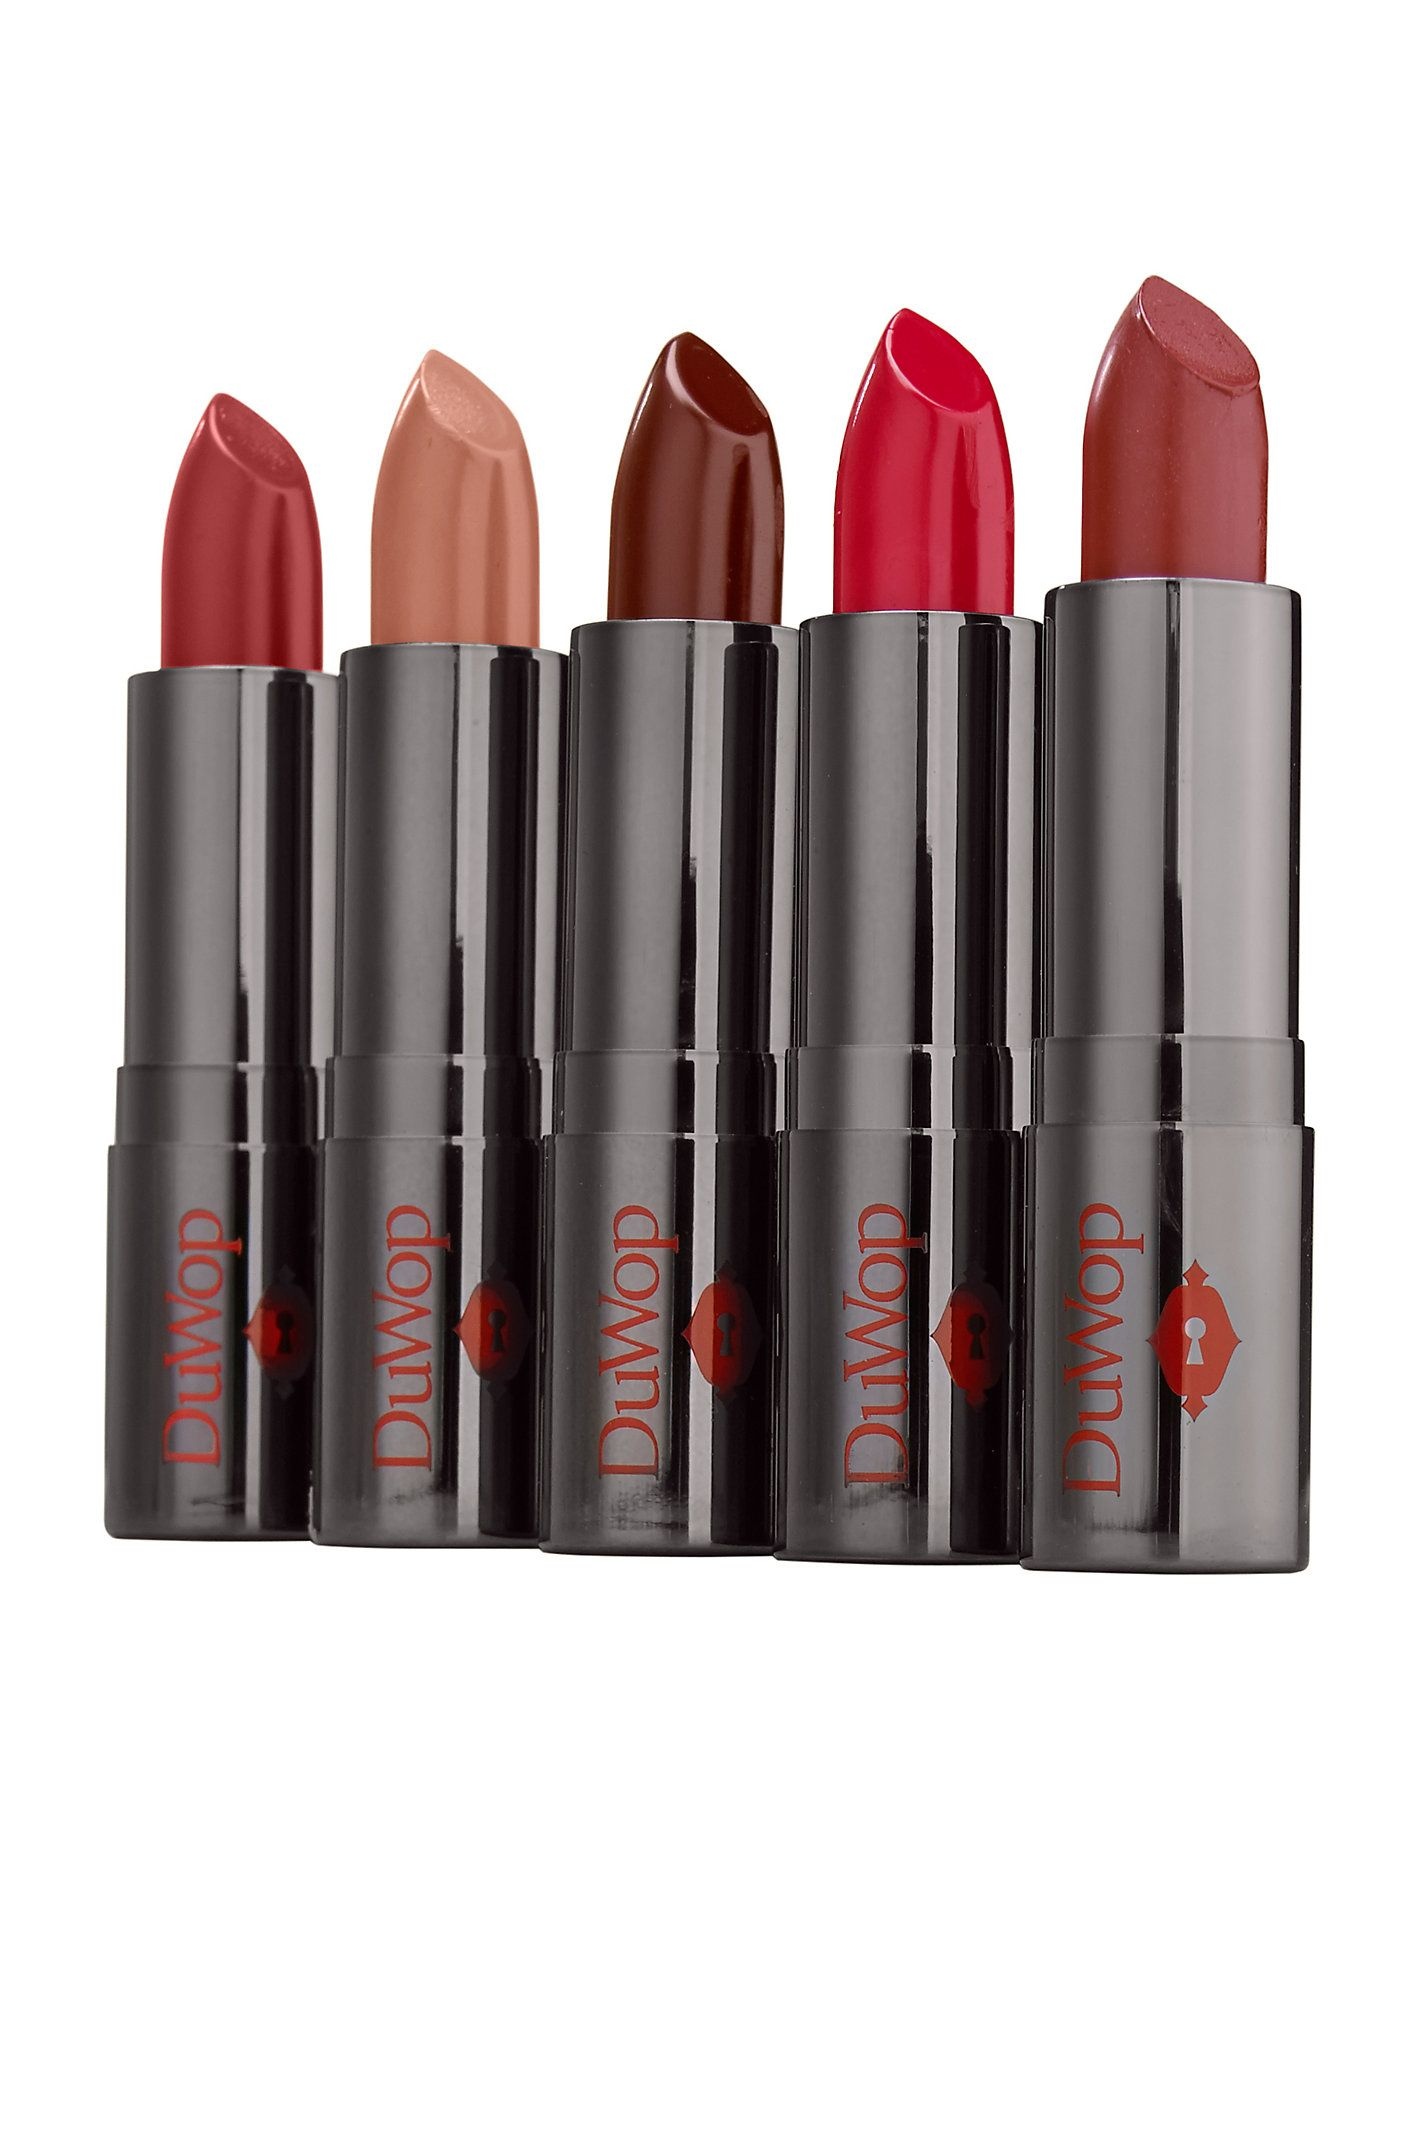 DuWop Perfect Lipstick Self adjusts to your perfect